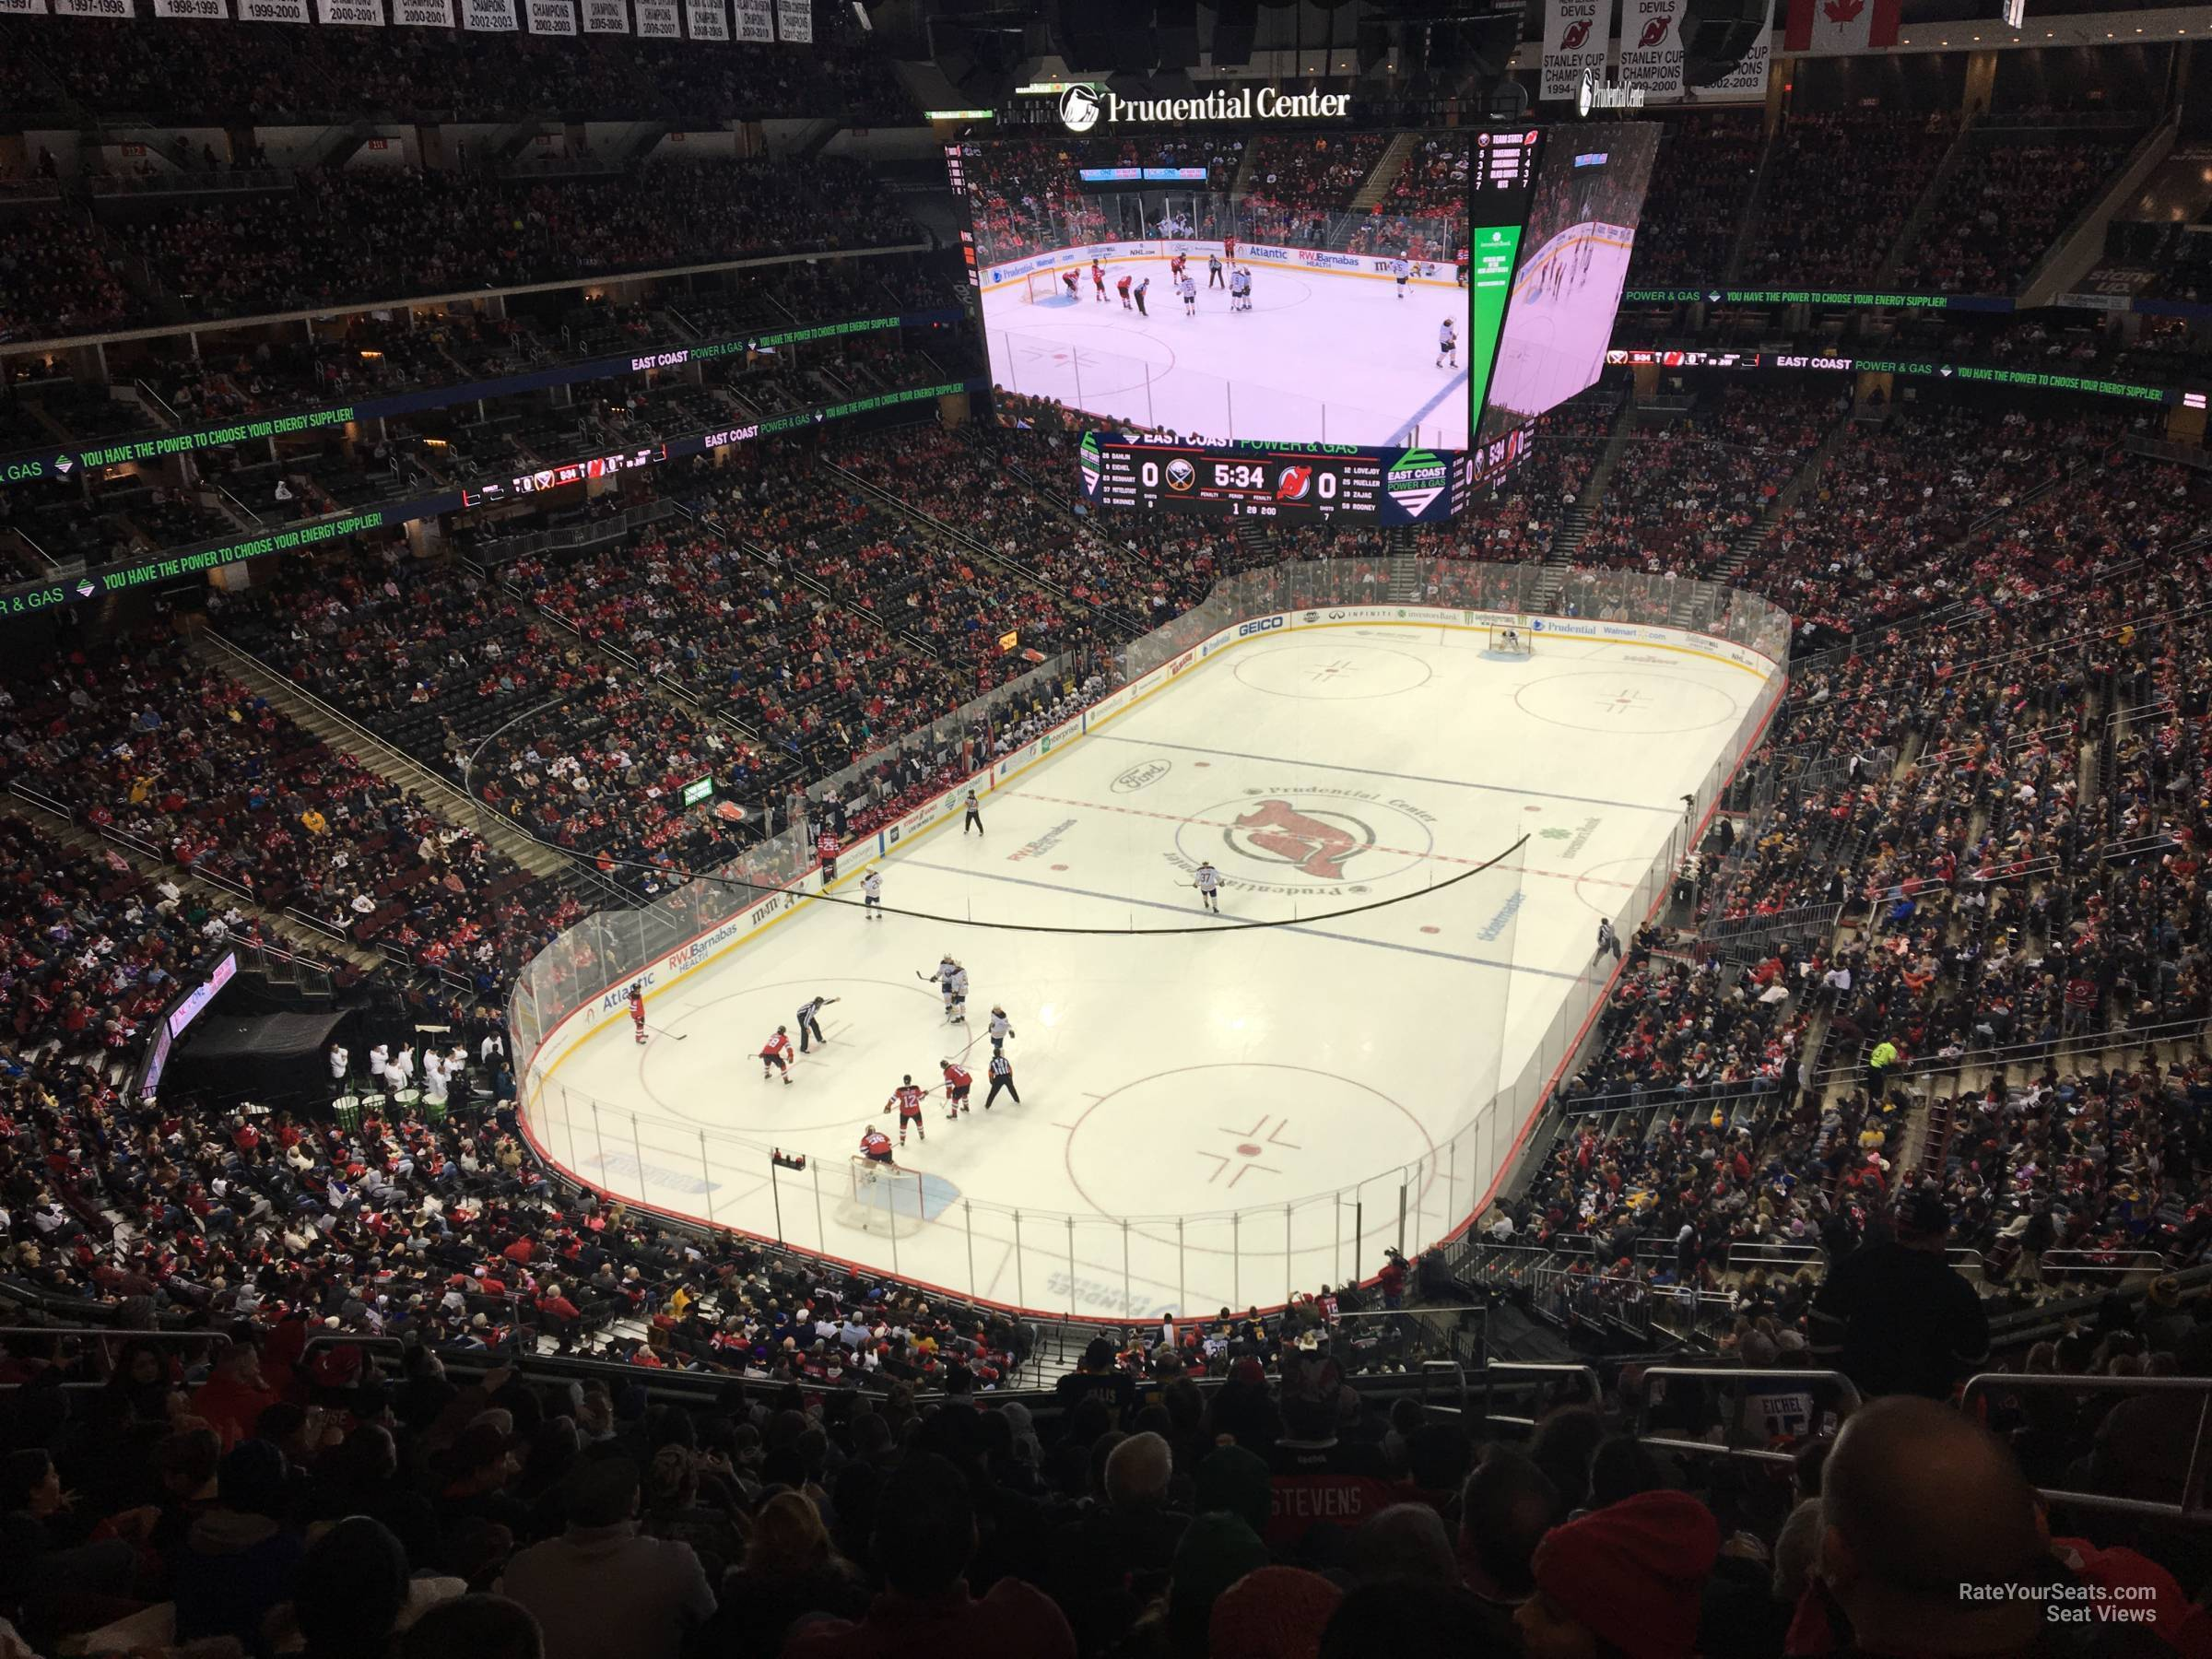 New Jersey Devils Seat View for Prudential Center Section 122, Row 6